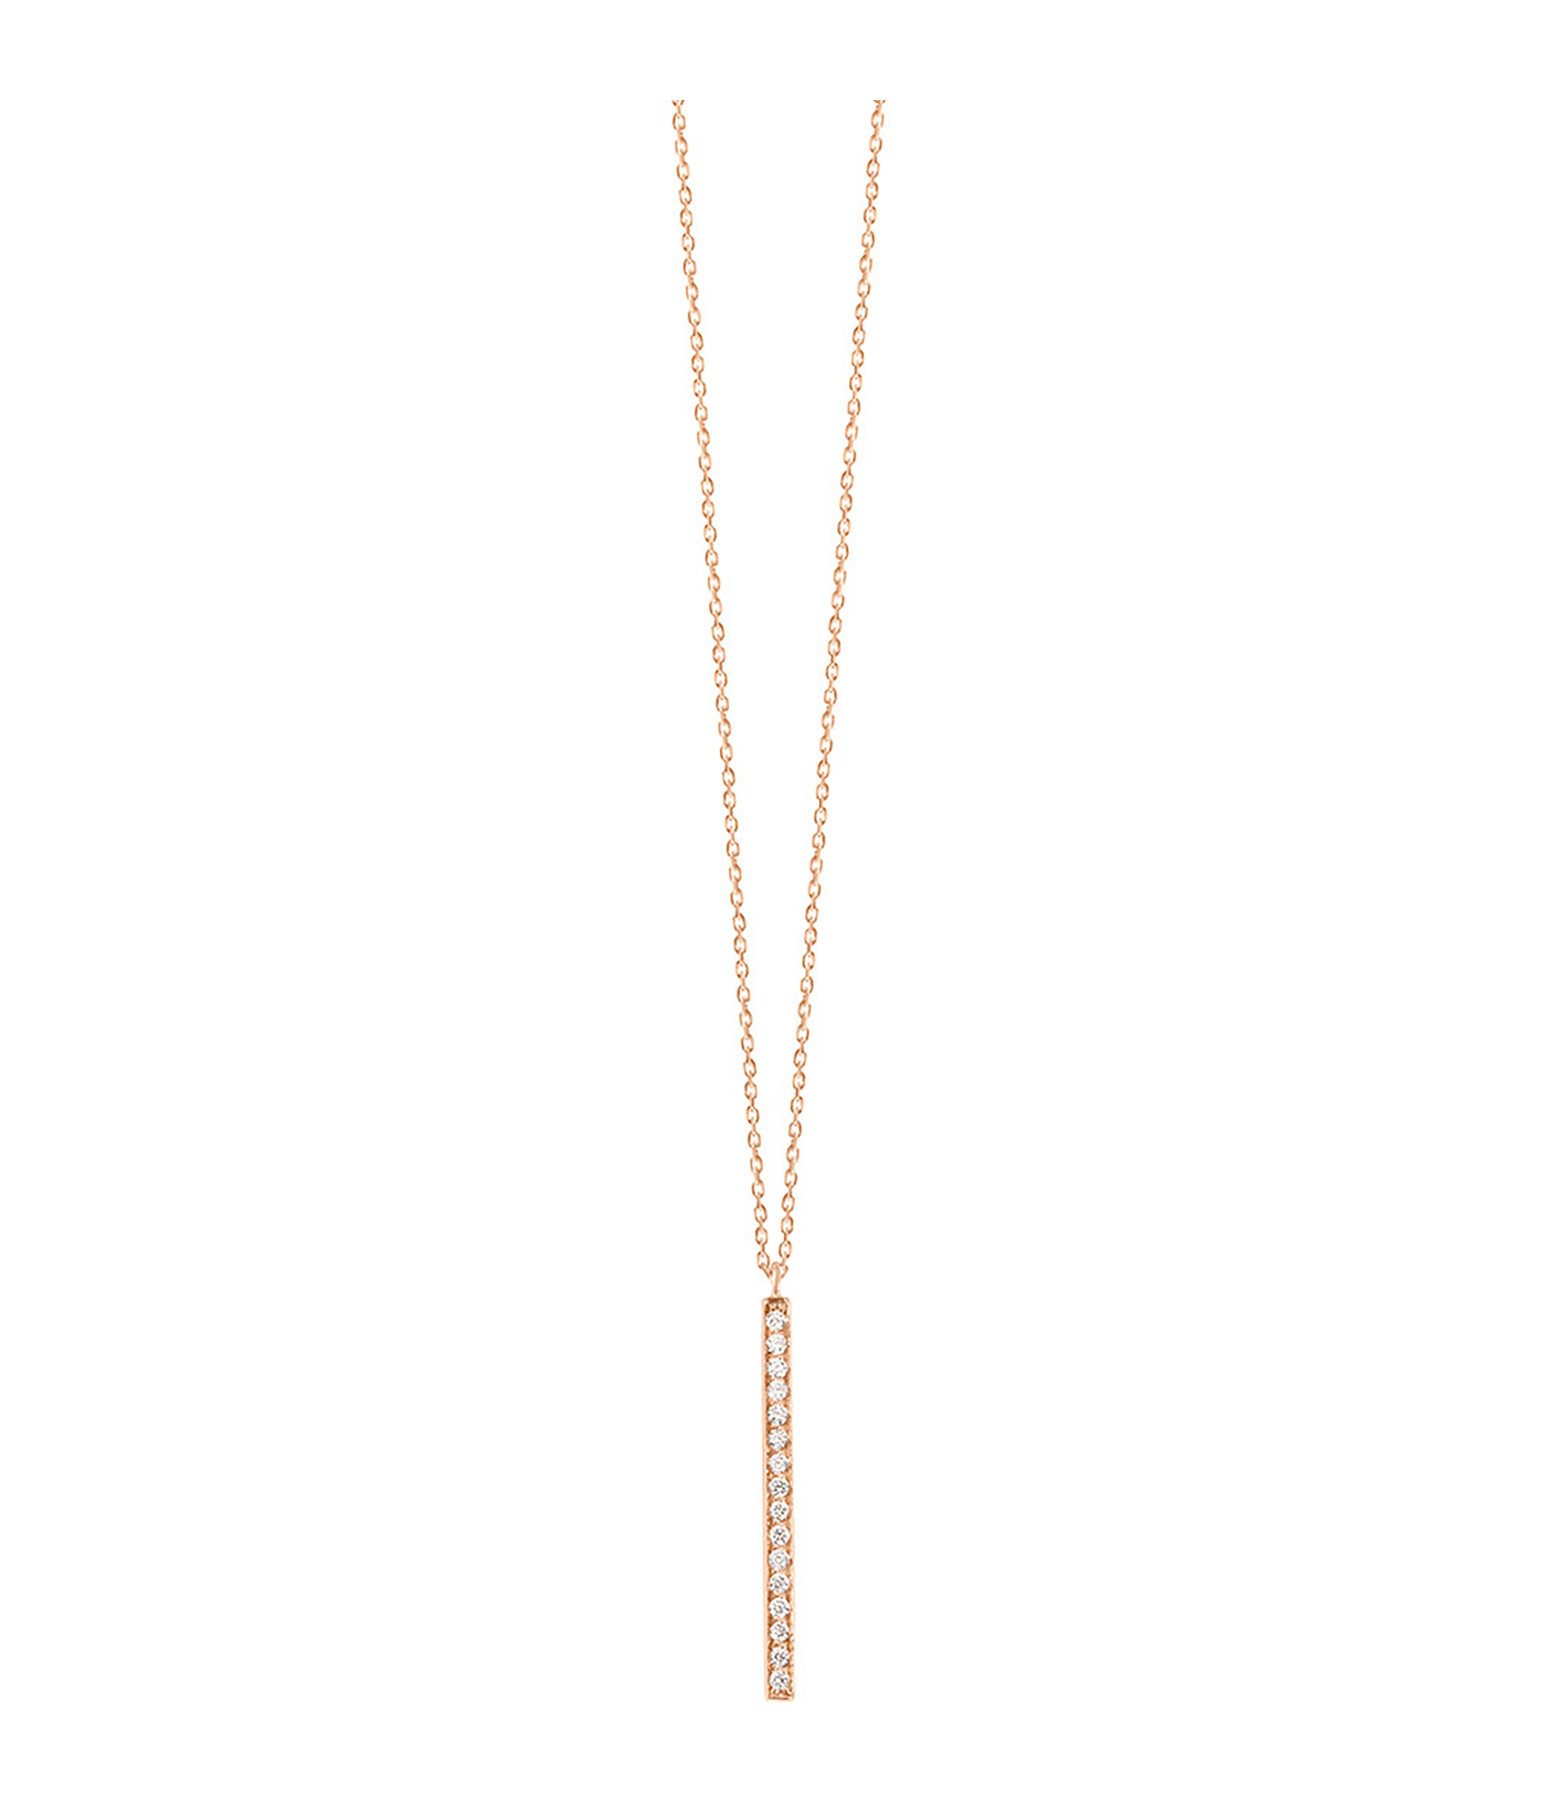 VANRYCKE - Collier Medellin Or Rose Diamants